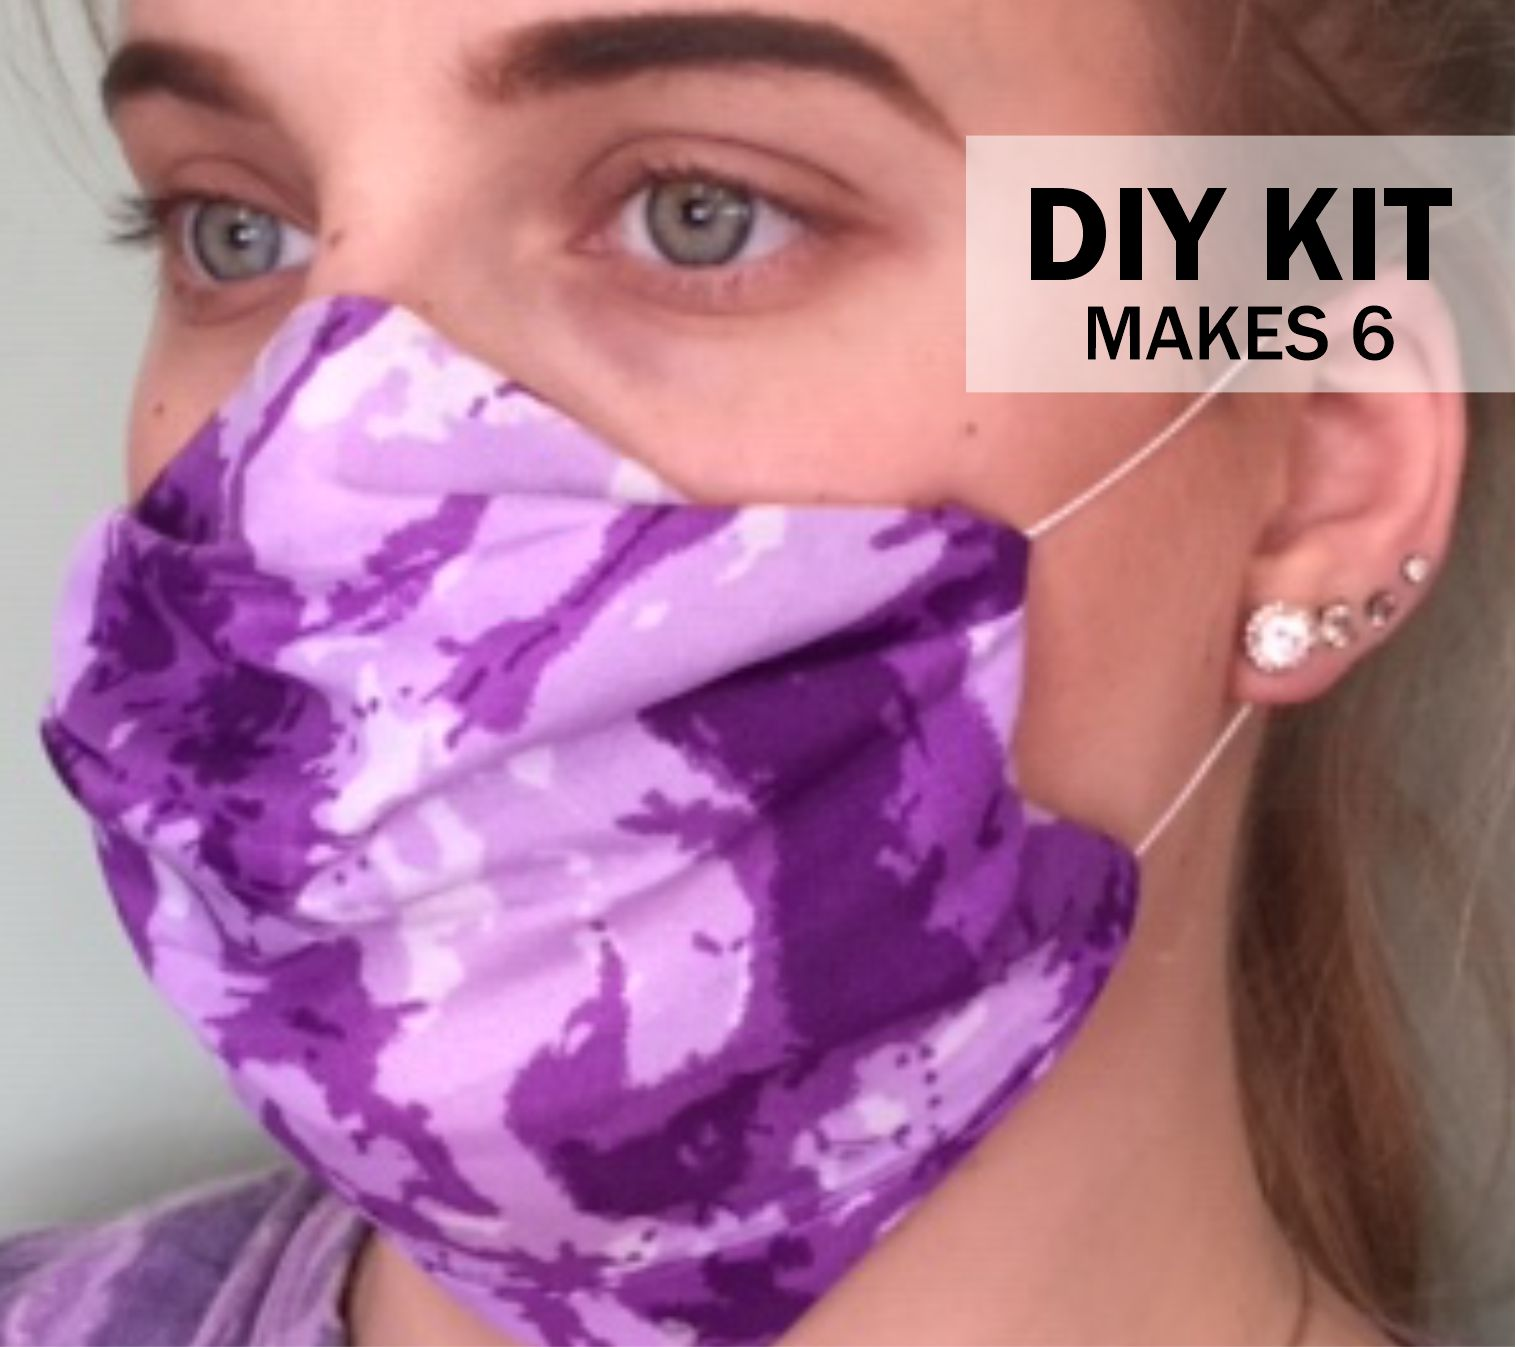 With this kit your girls can make face masks for their family and friends or front line workers. Or make it a money-earning project for your troop. Includes illustrated step-by-step instructions for the best DIY mask. No fabric scissors needed. Just fold, press and stitch. Stitching is seven straight lines so it's great for beginners. Or assemble using fabric glue or strips of BadgeBond for the same great results. Kit makes 6 adult or child sized and is available at MakingFriends®.com. via @gsleader411